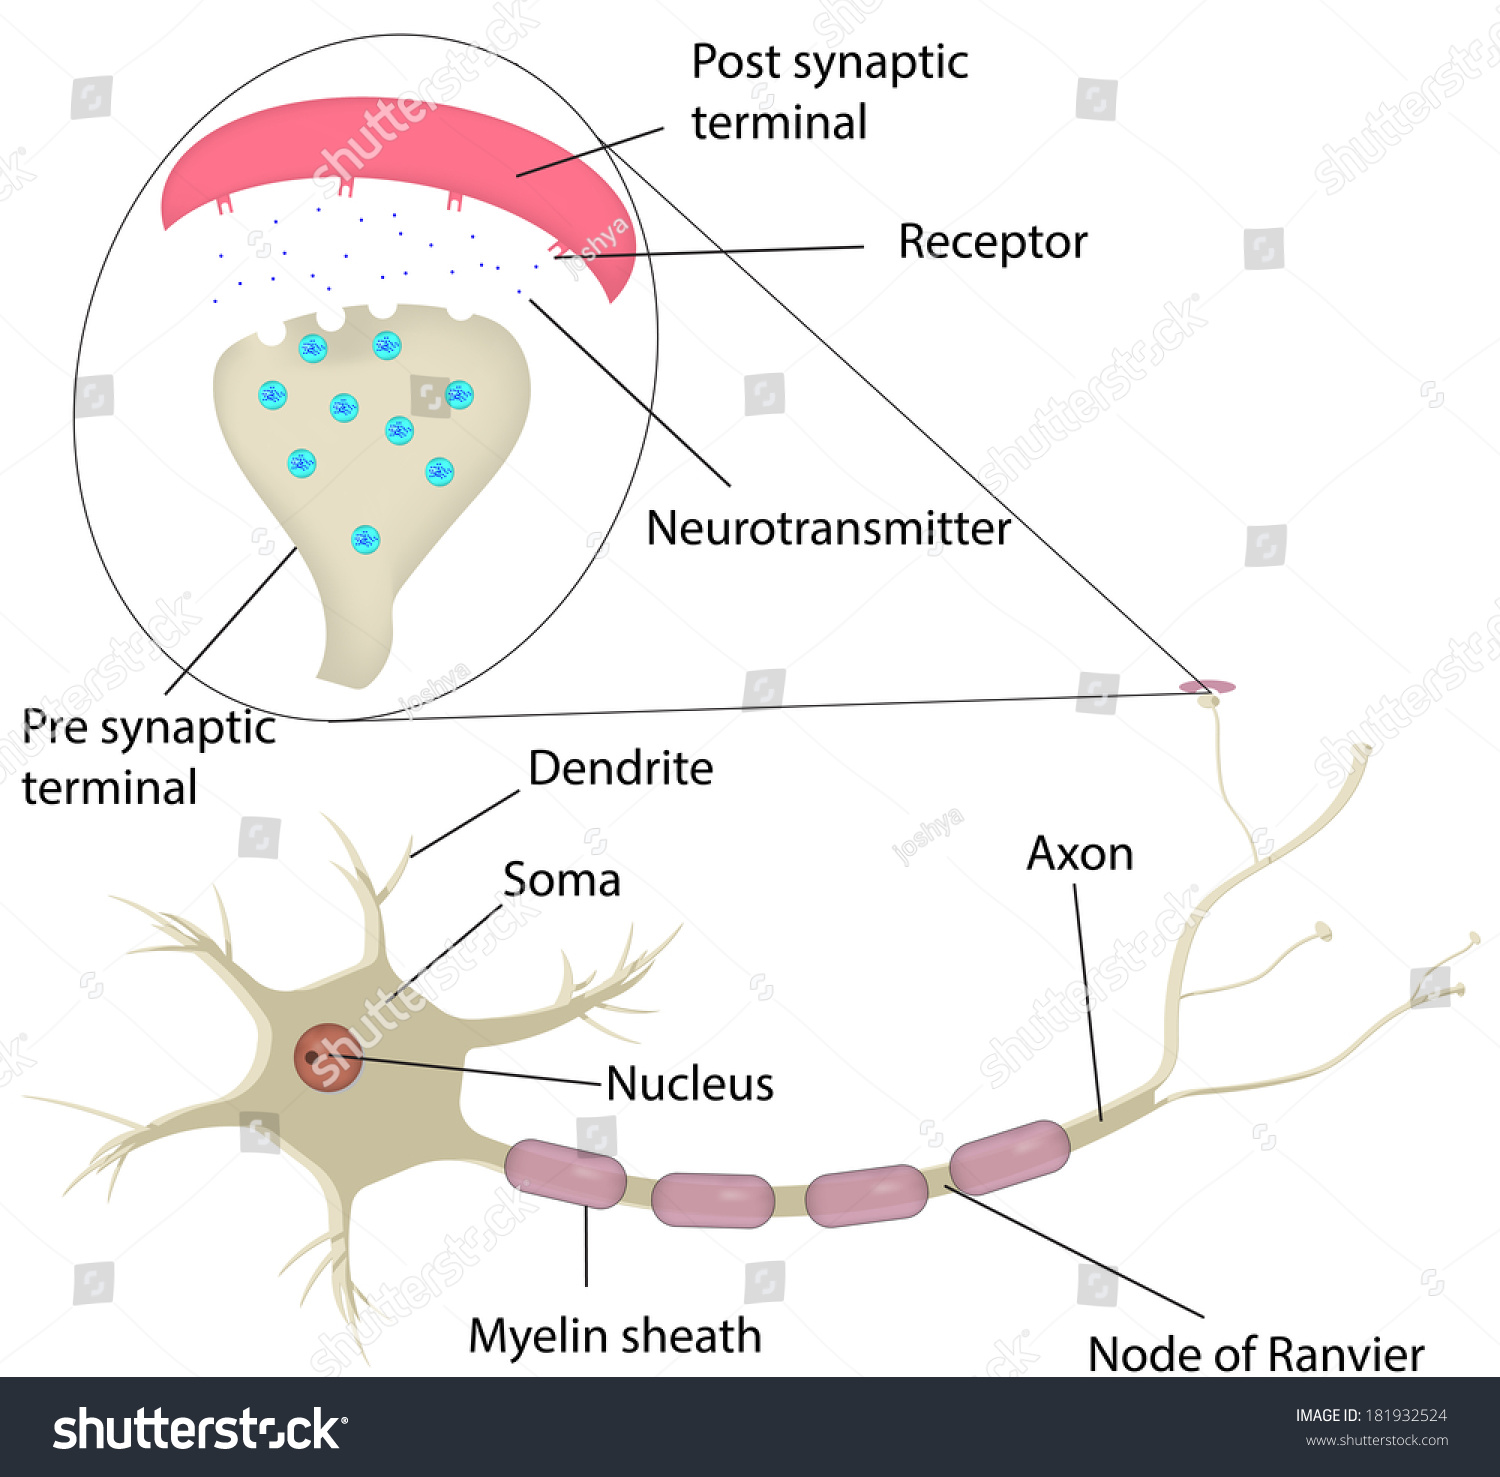 neuron synapse labeled diagram stock vector (royalty free) 181932524